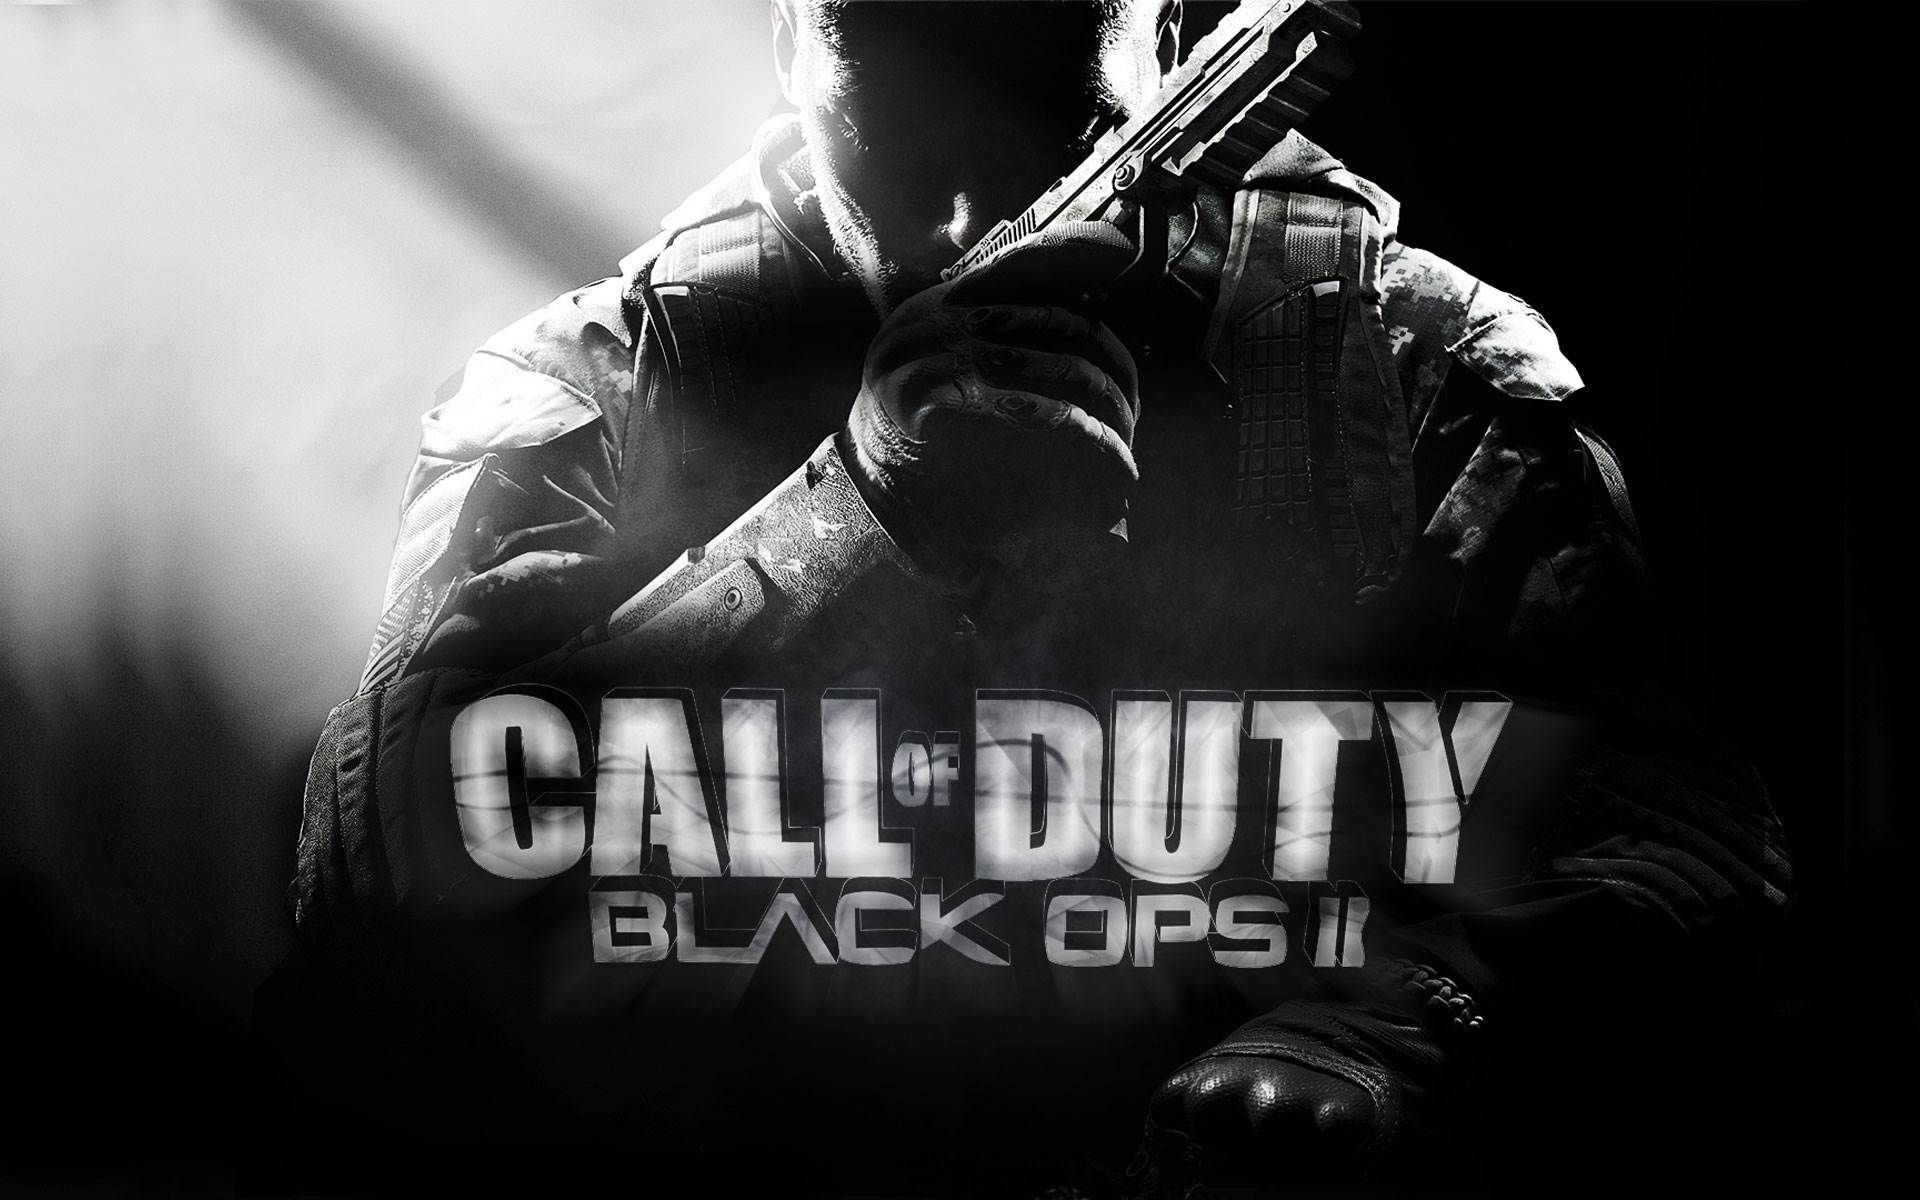 call of duty black ops zombie wallpaper u wallpaper free download